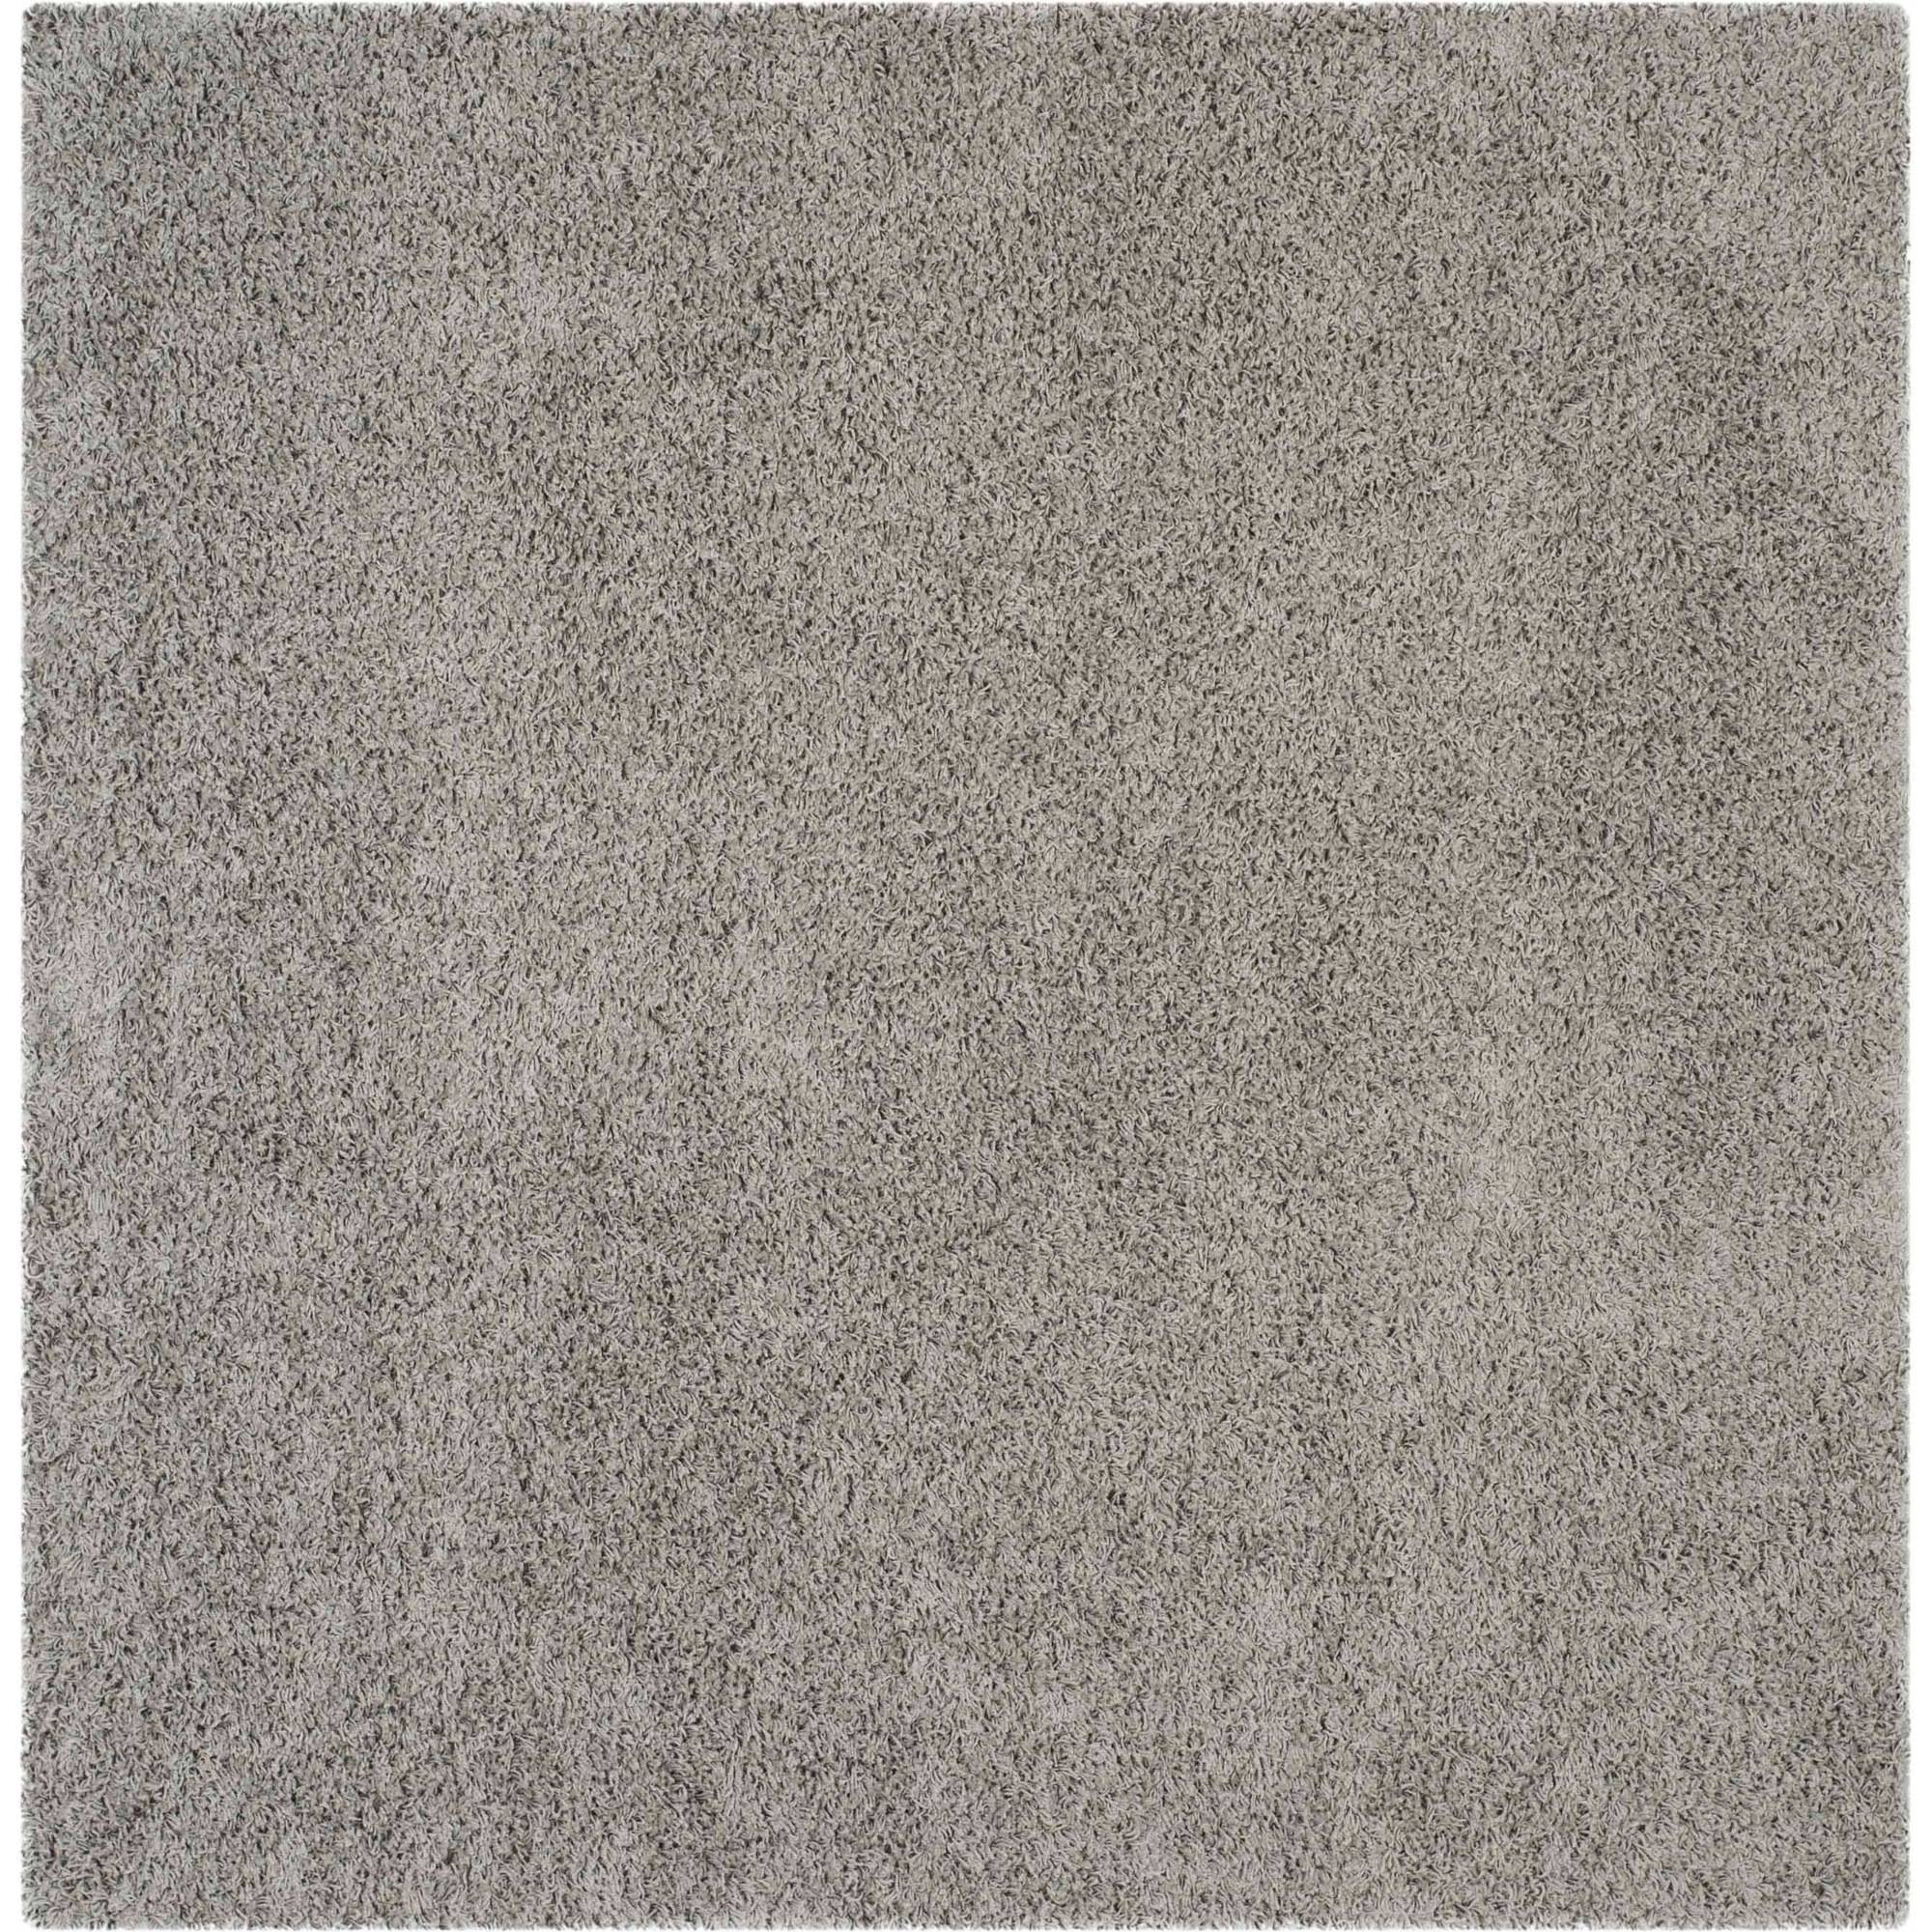 Safavieh Athens Solid Plush Shag Area Rug or Runner by Safavieh